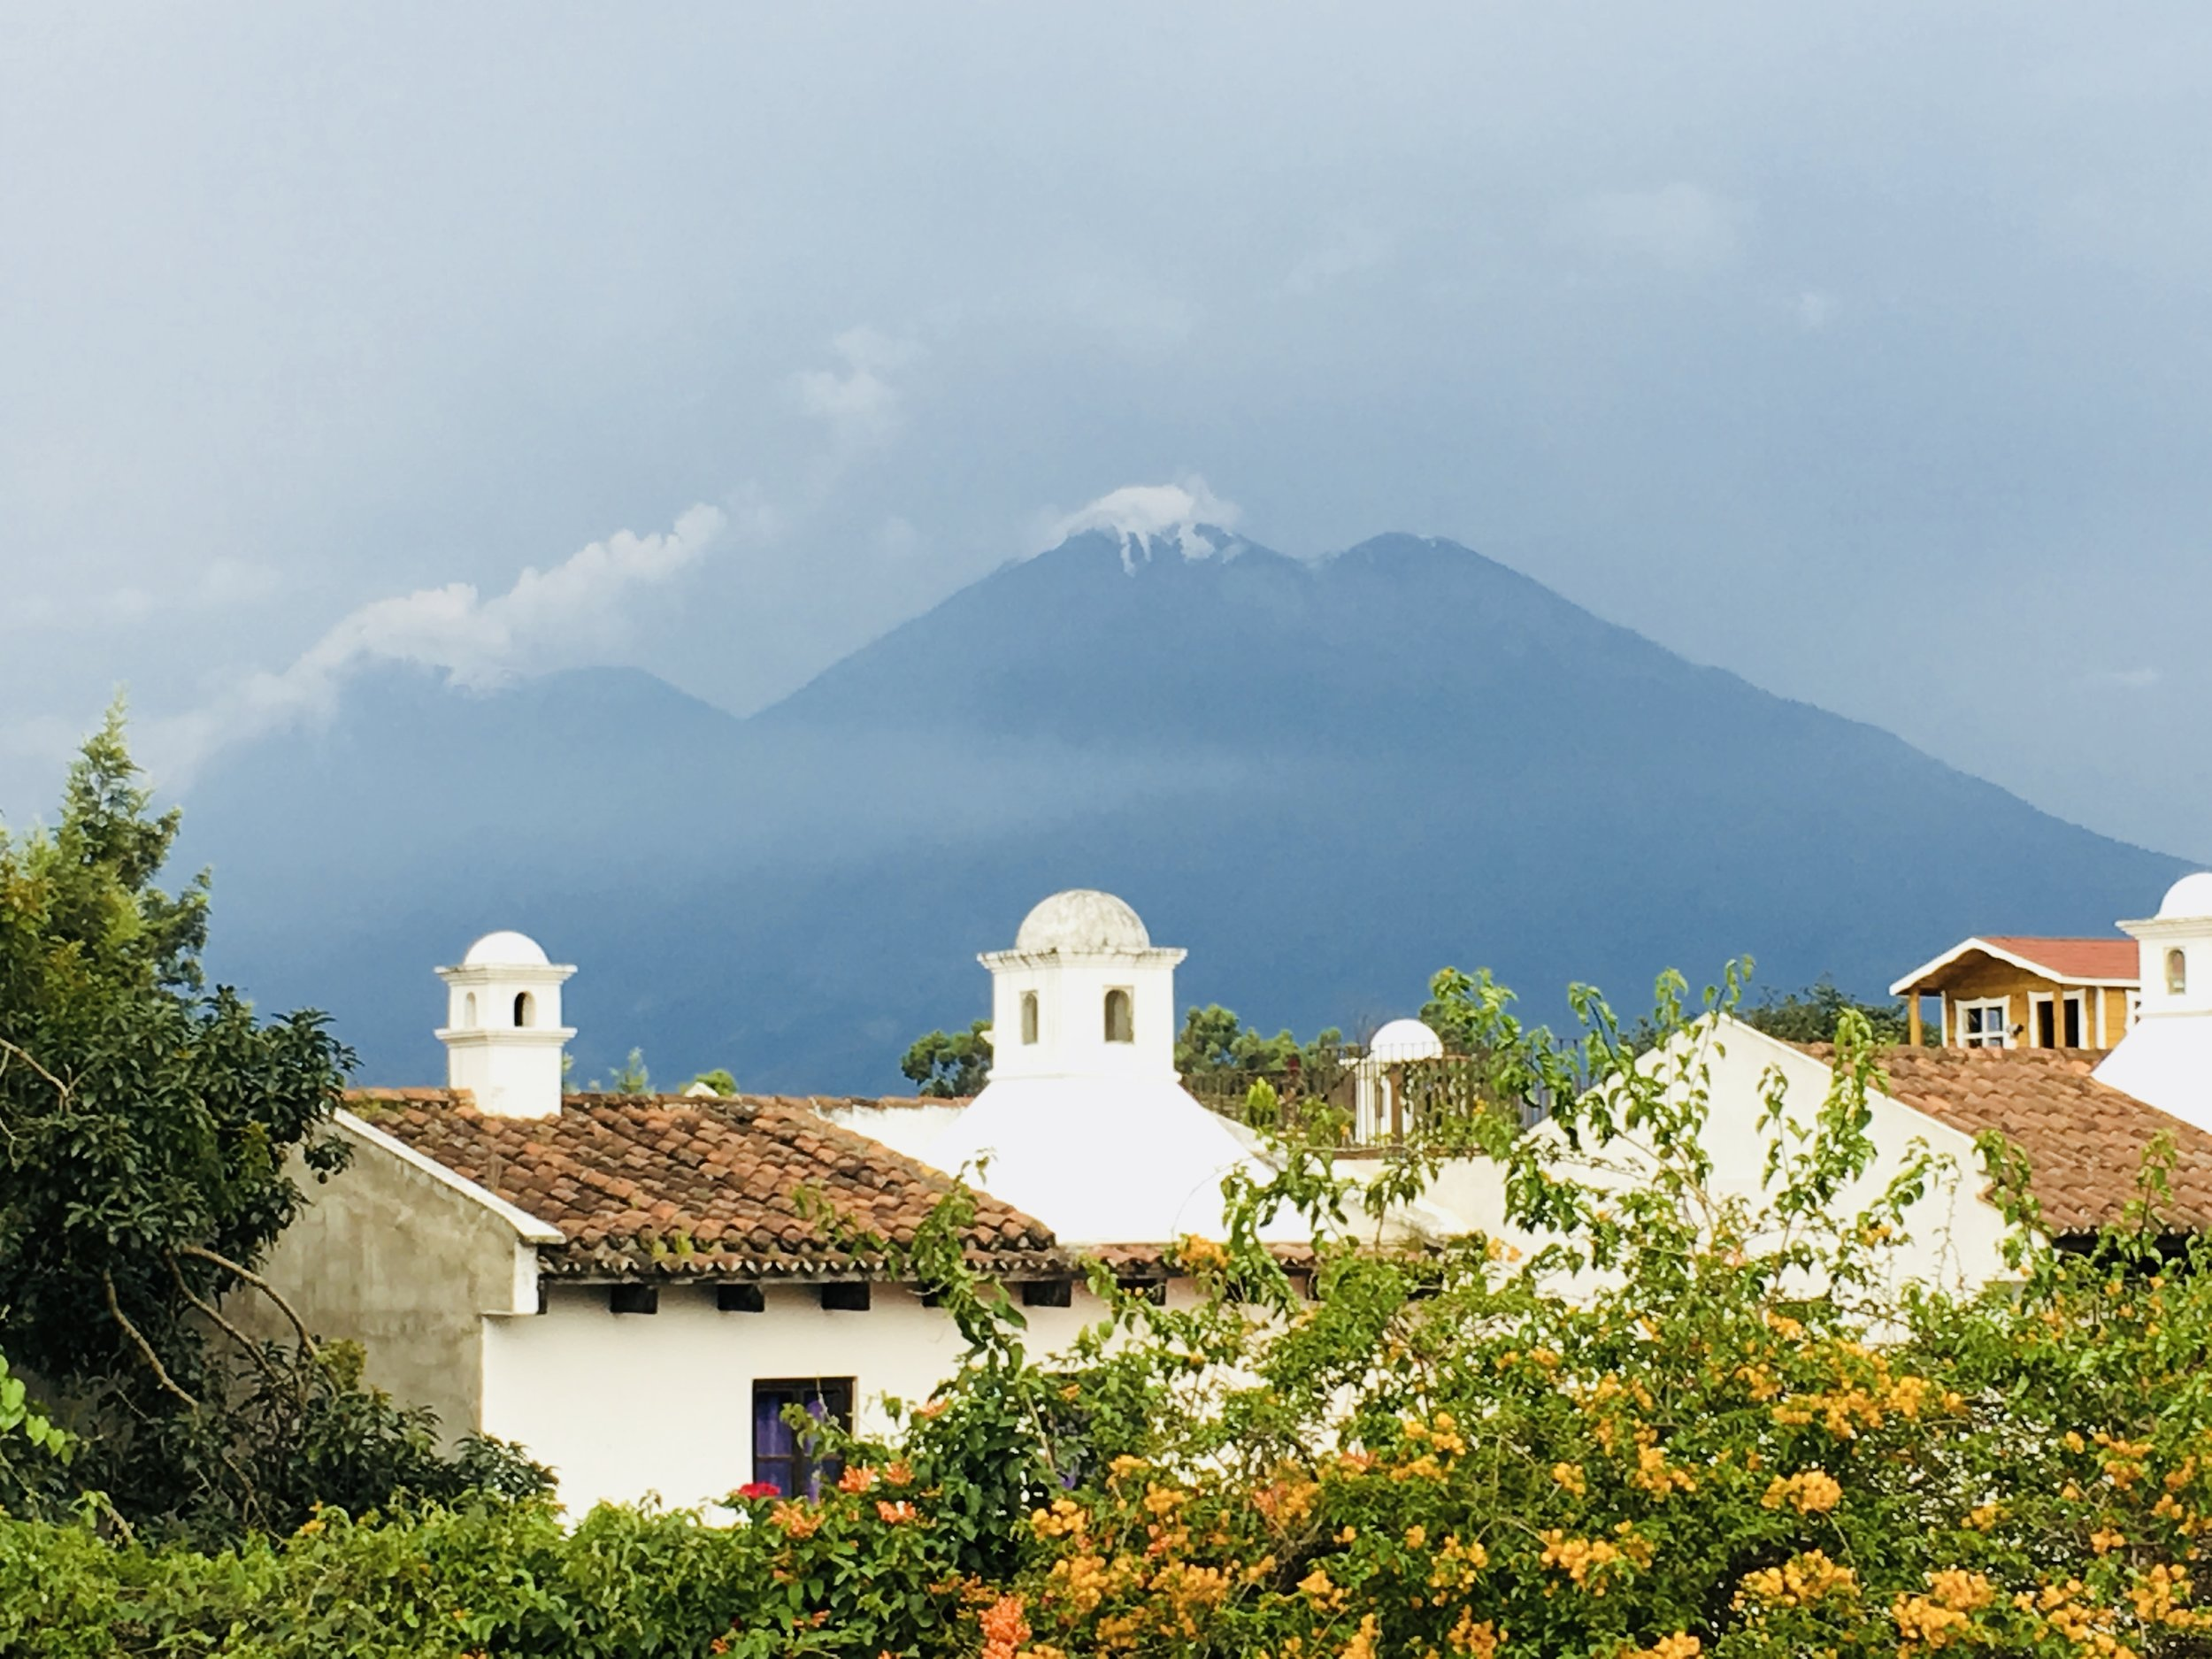 The view from the beautiful Common Hope campus in Antigua, Guatemala.